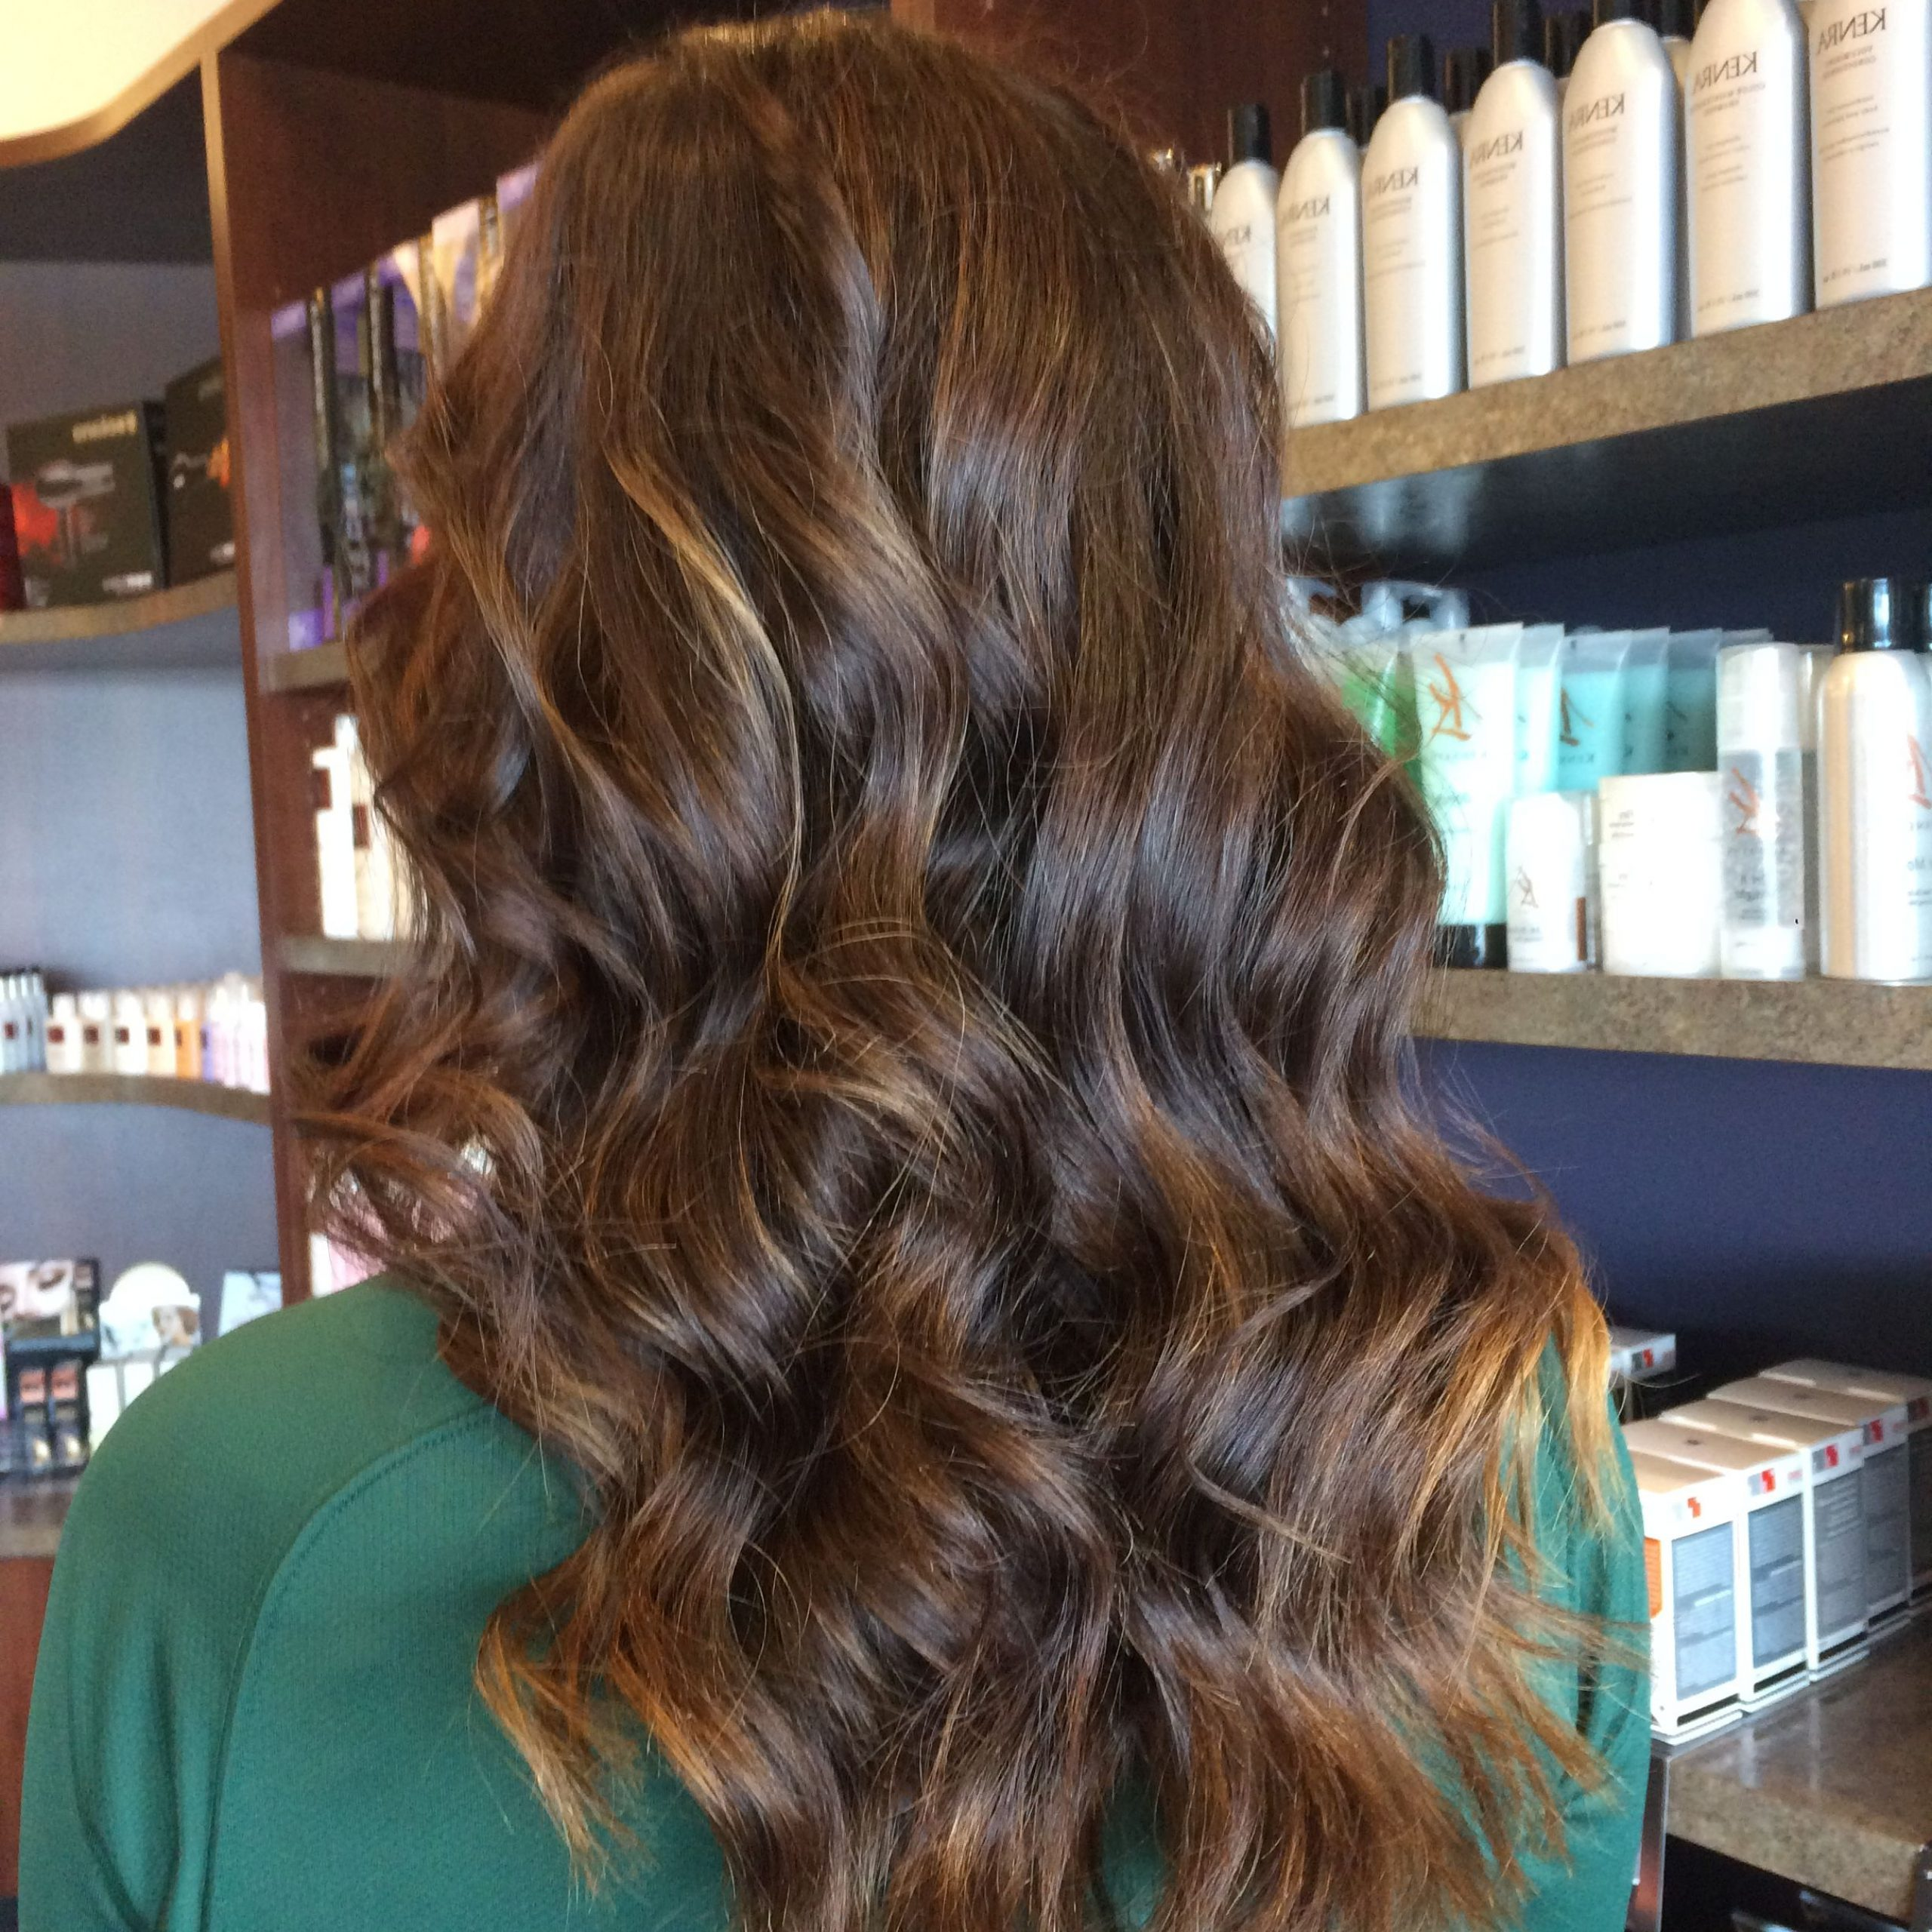 Balayage & Curls #kennethssalon #hairbyelle #balyage Intended For Favorite Golden Blonde Balayage On Long Curls Hairstyles (View 12 of 20)